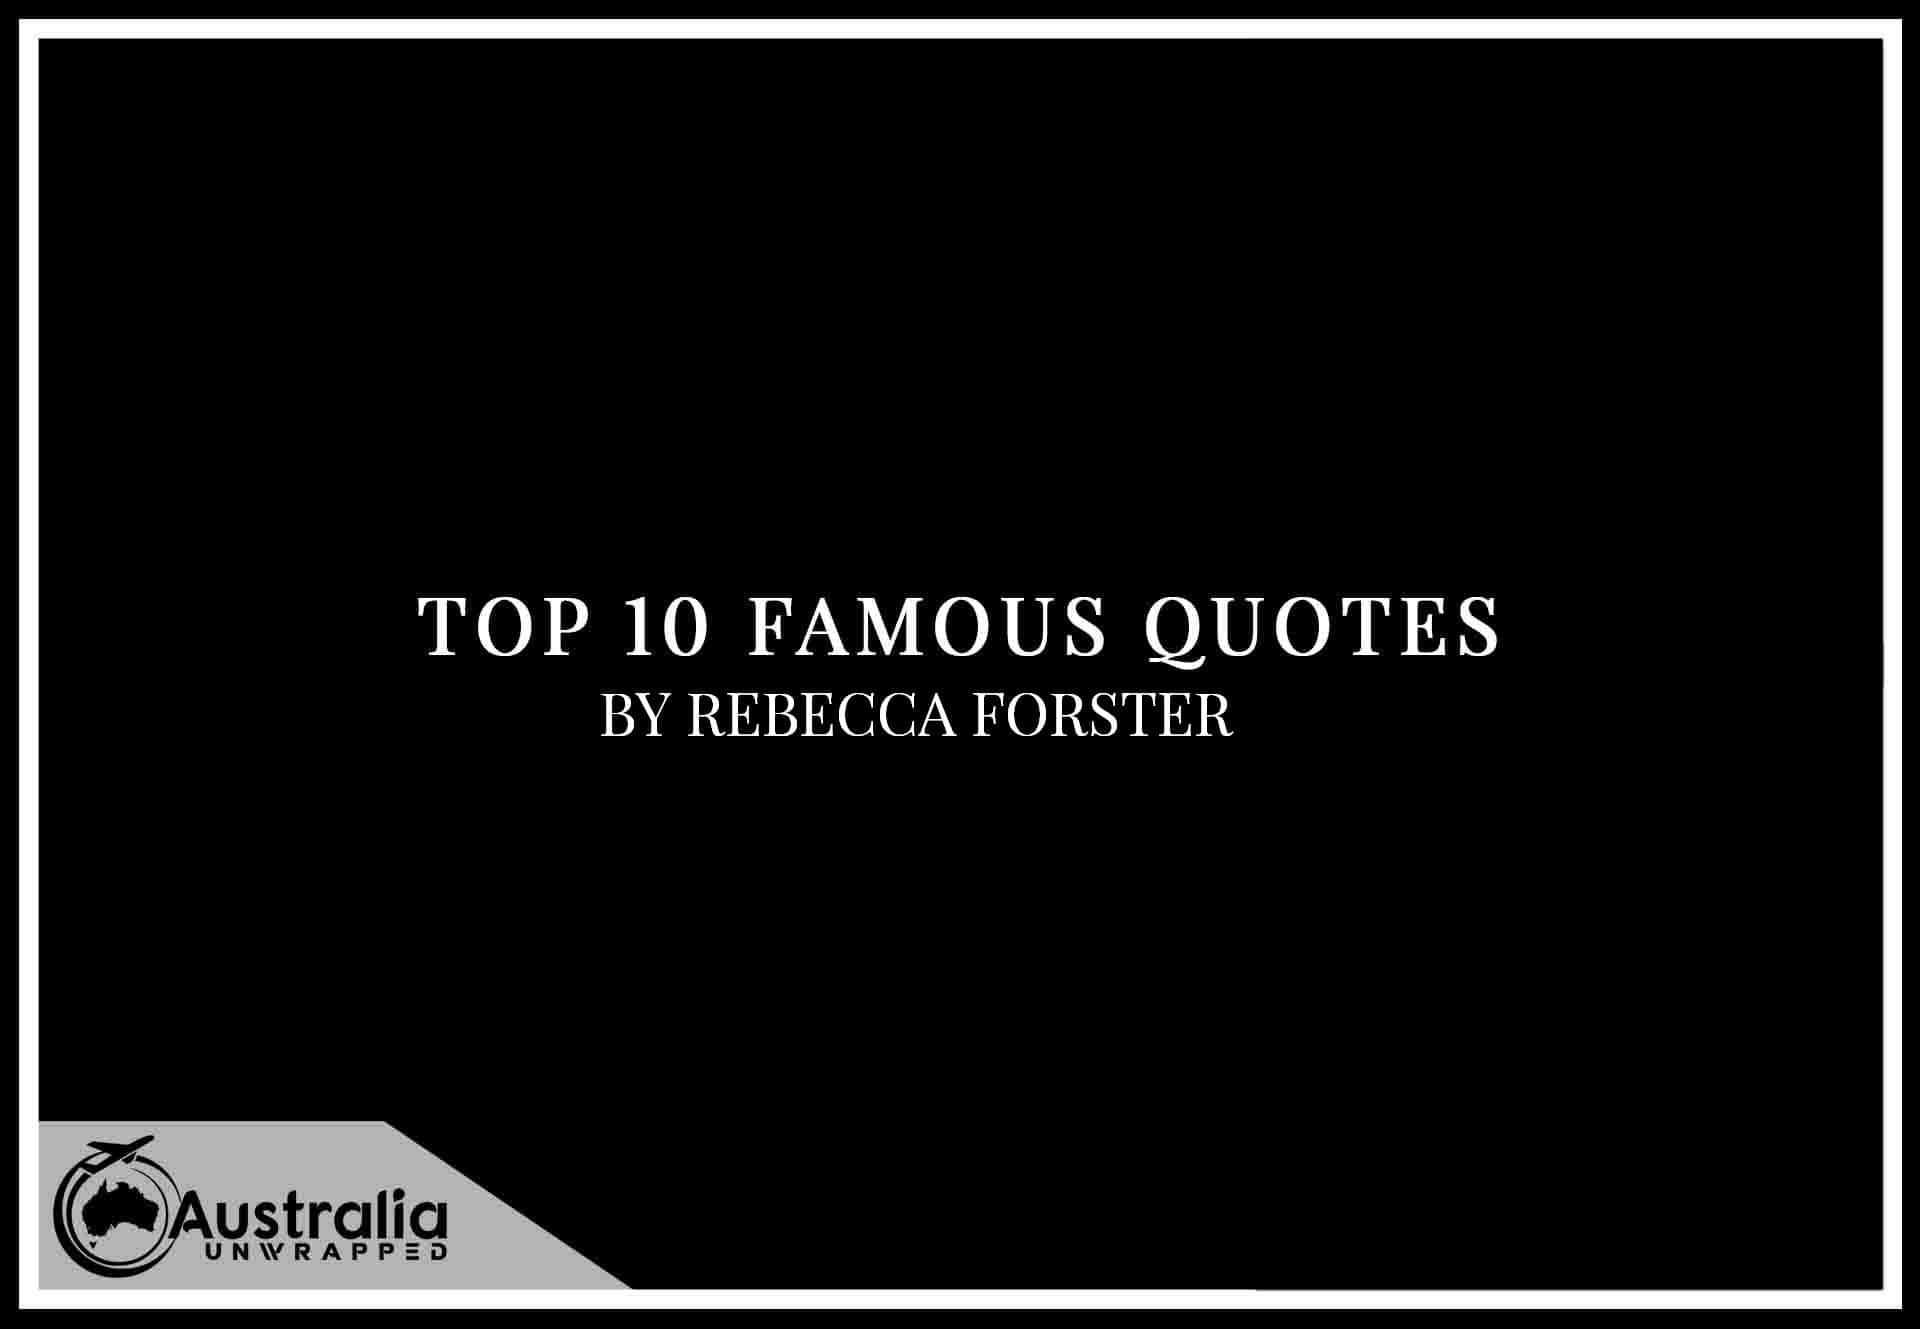 Top 10 Famous Quotes by Author Rebecca Forster